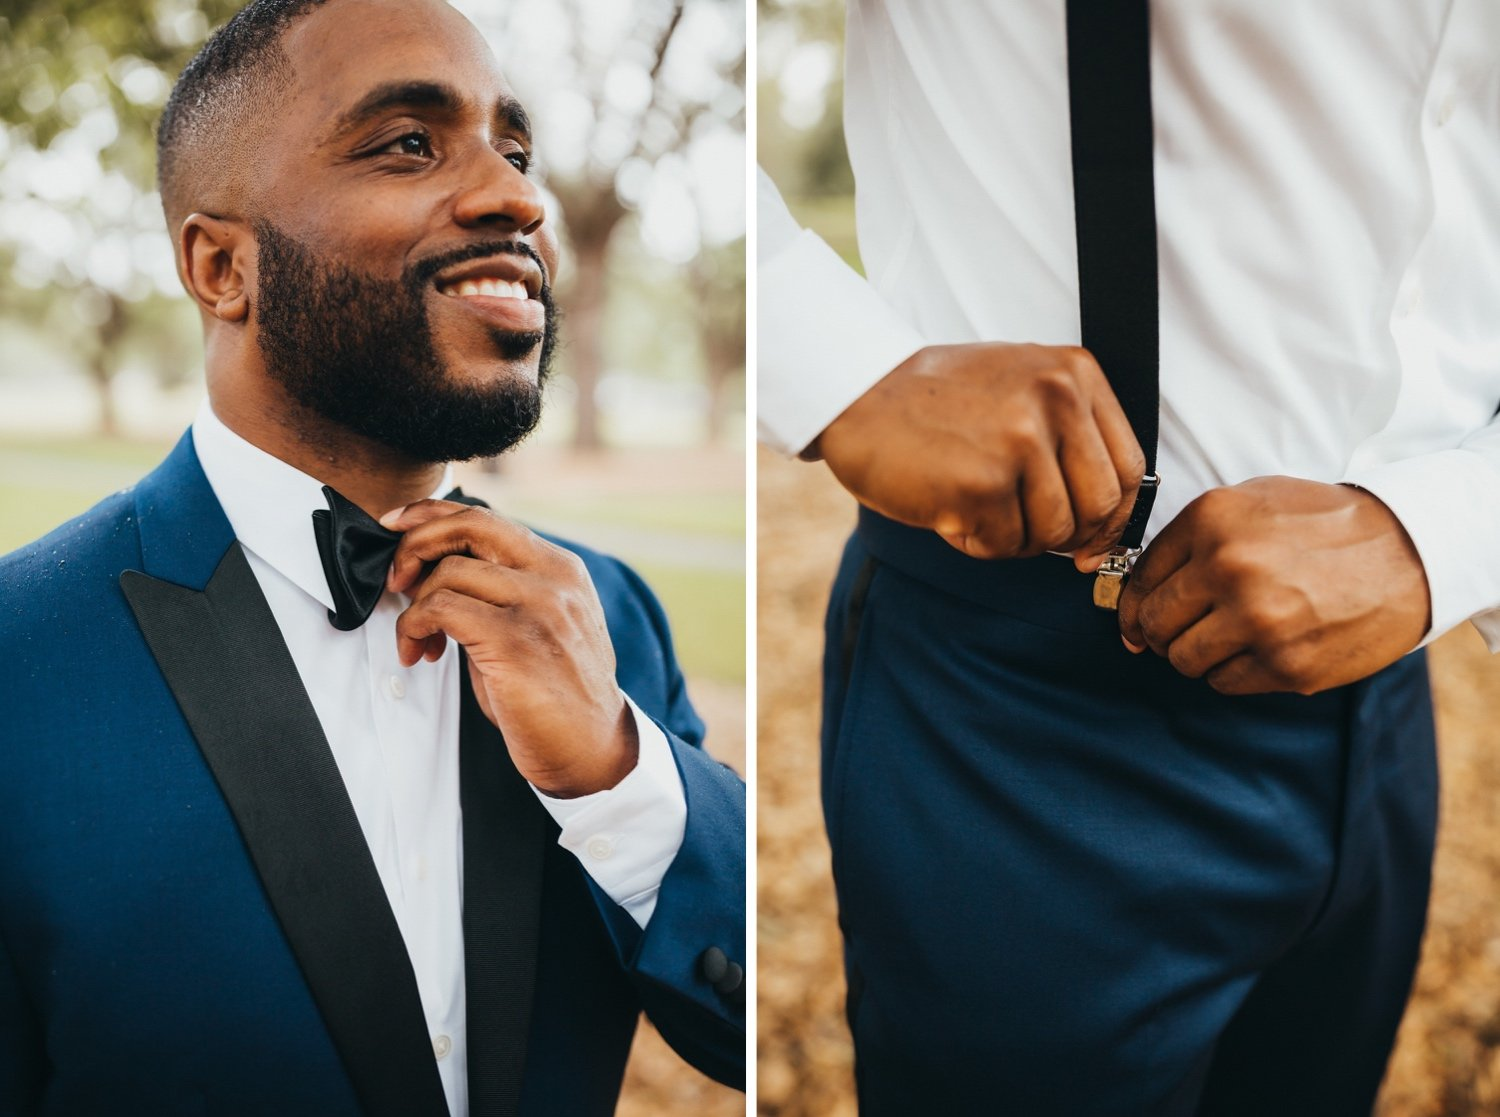 Groom adjusting his wedding suit for getting ready